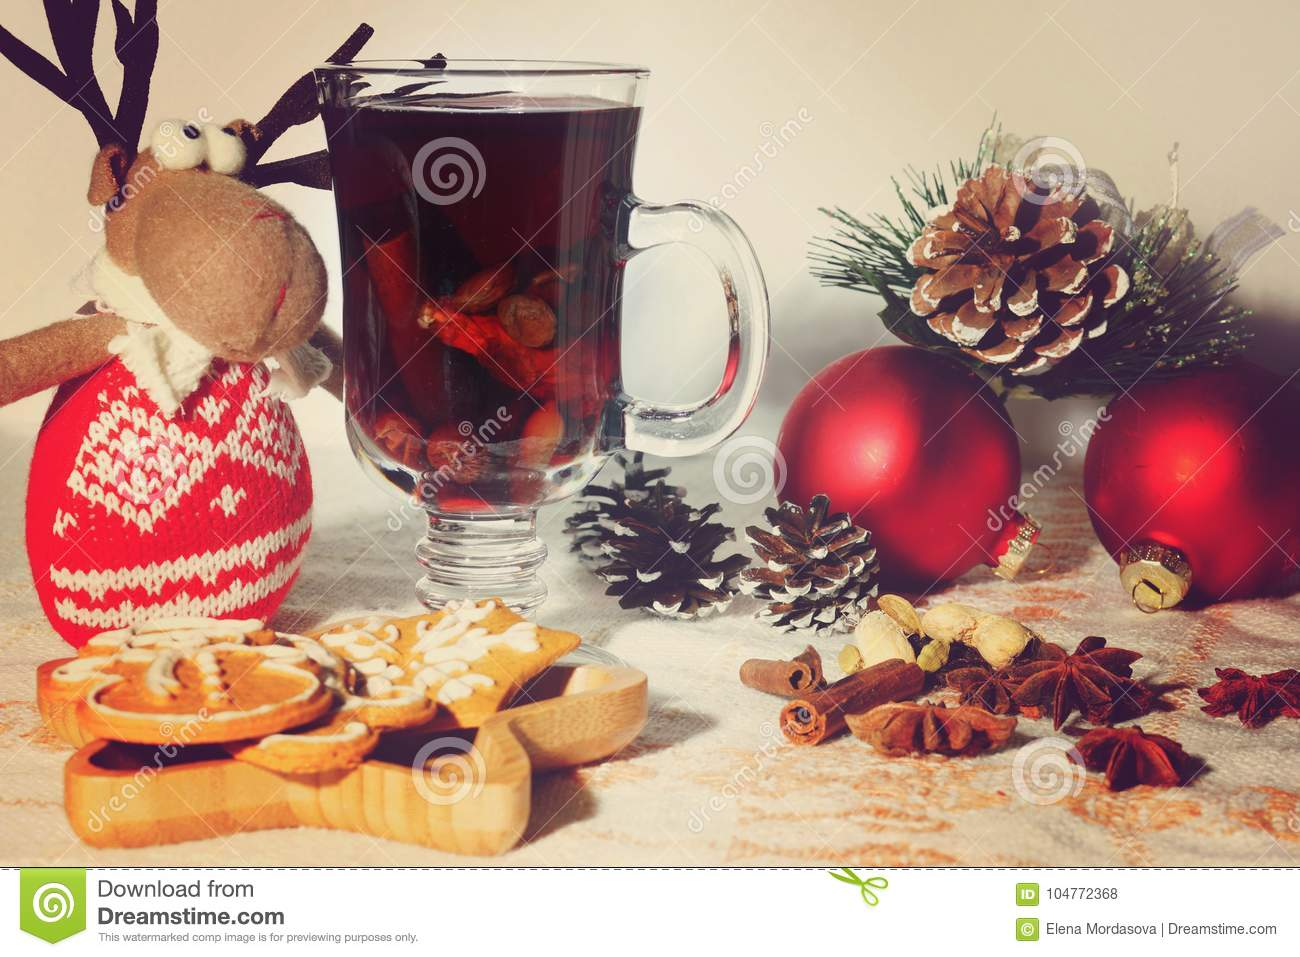 New Year celebratory table with mulled wine, ingredients and cookies, toy deer and Christmas decorations nearby